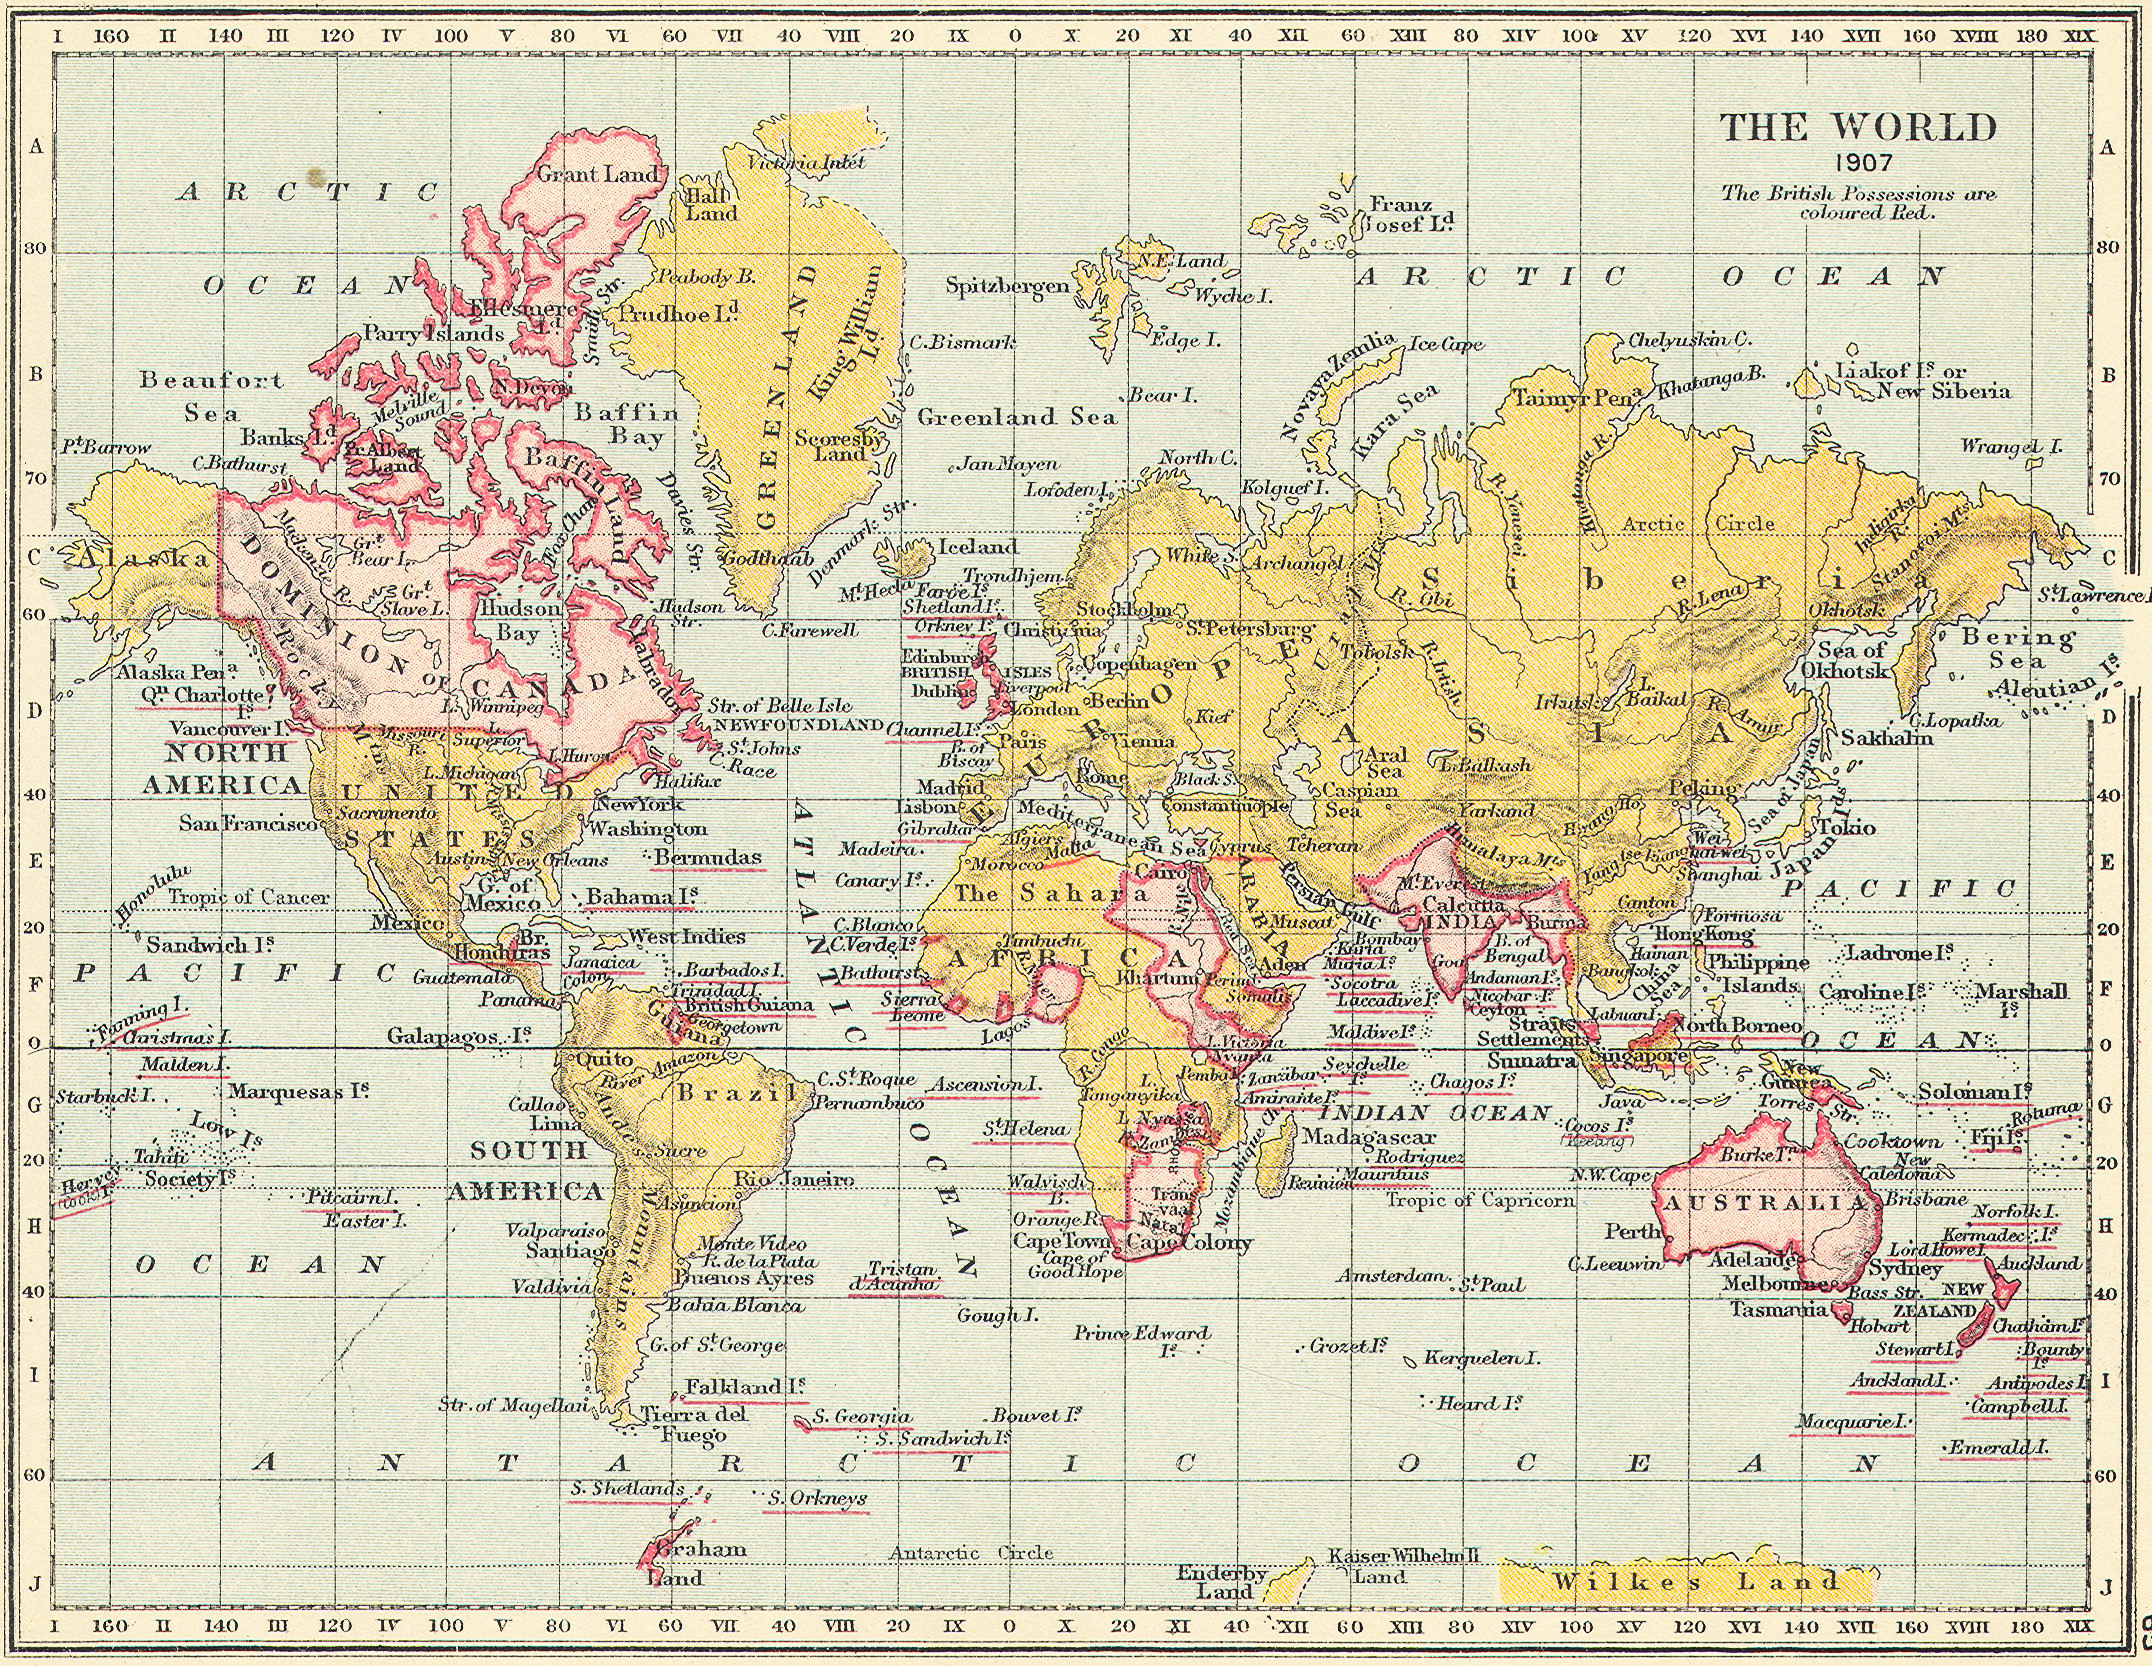 British_Empire_in_1907